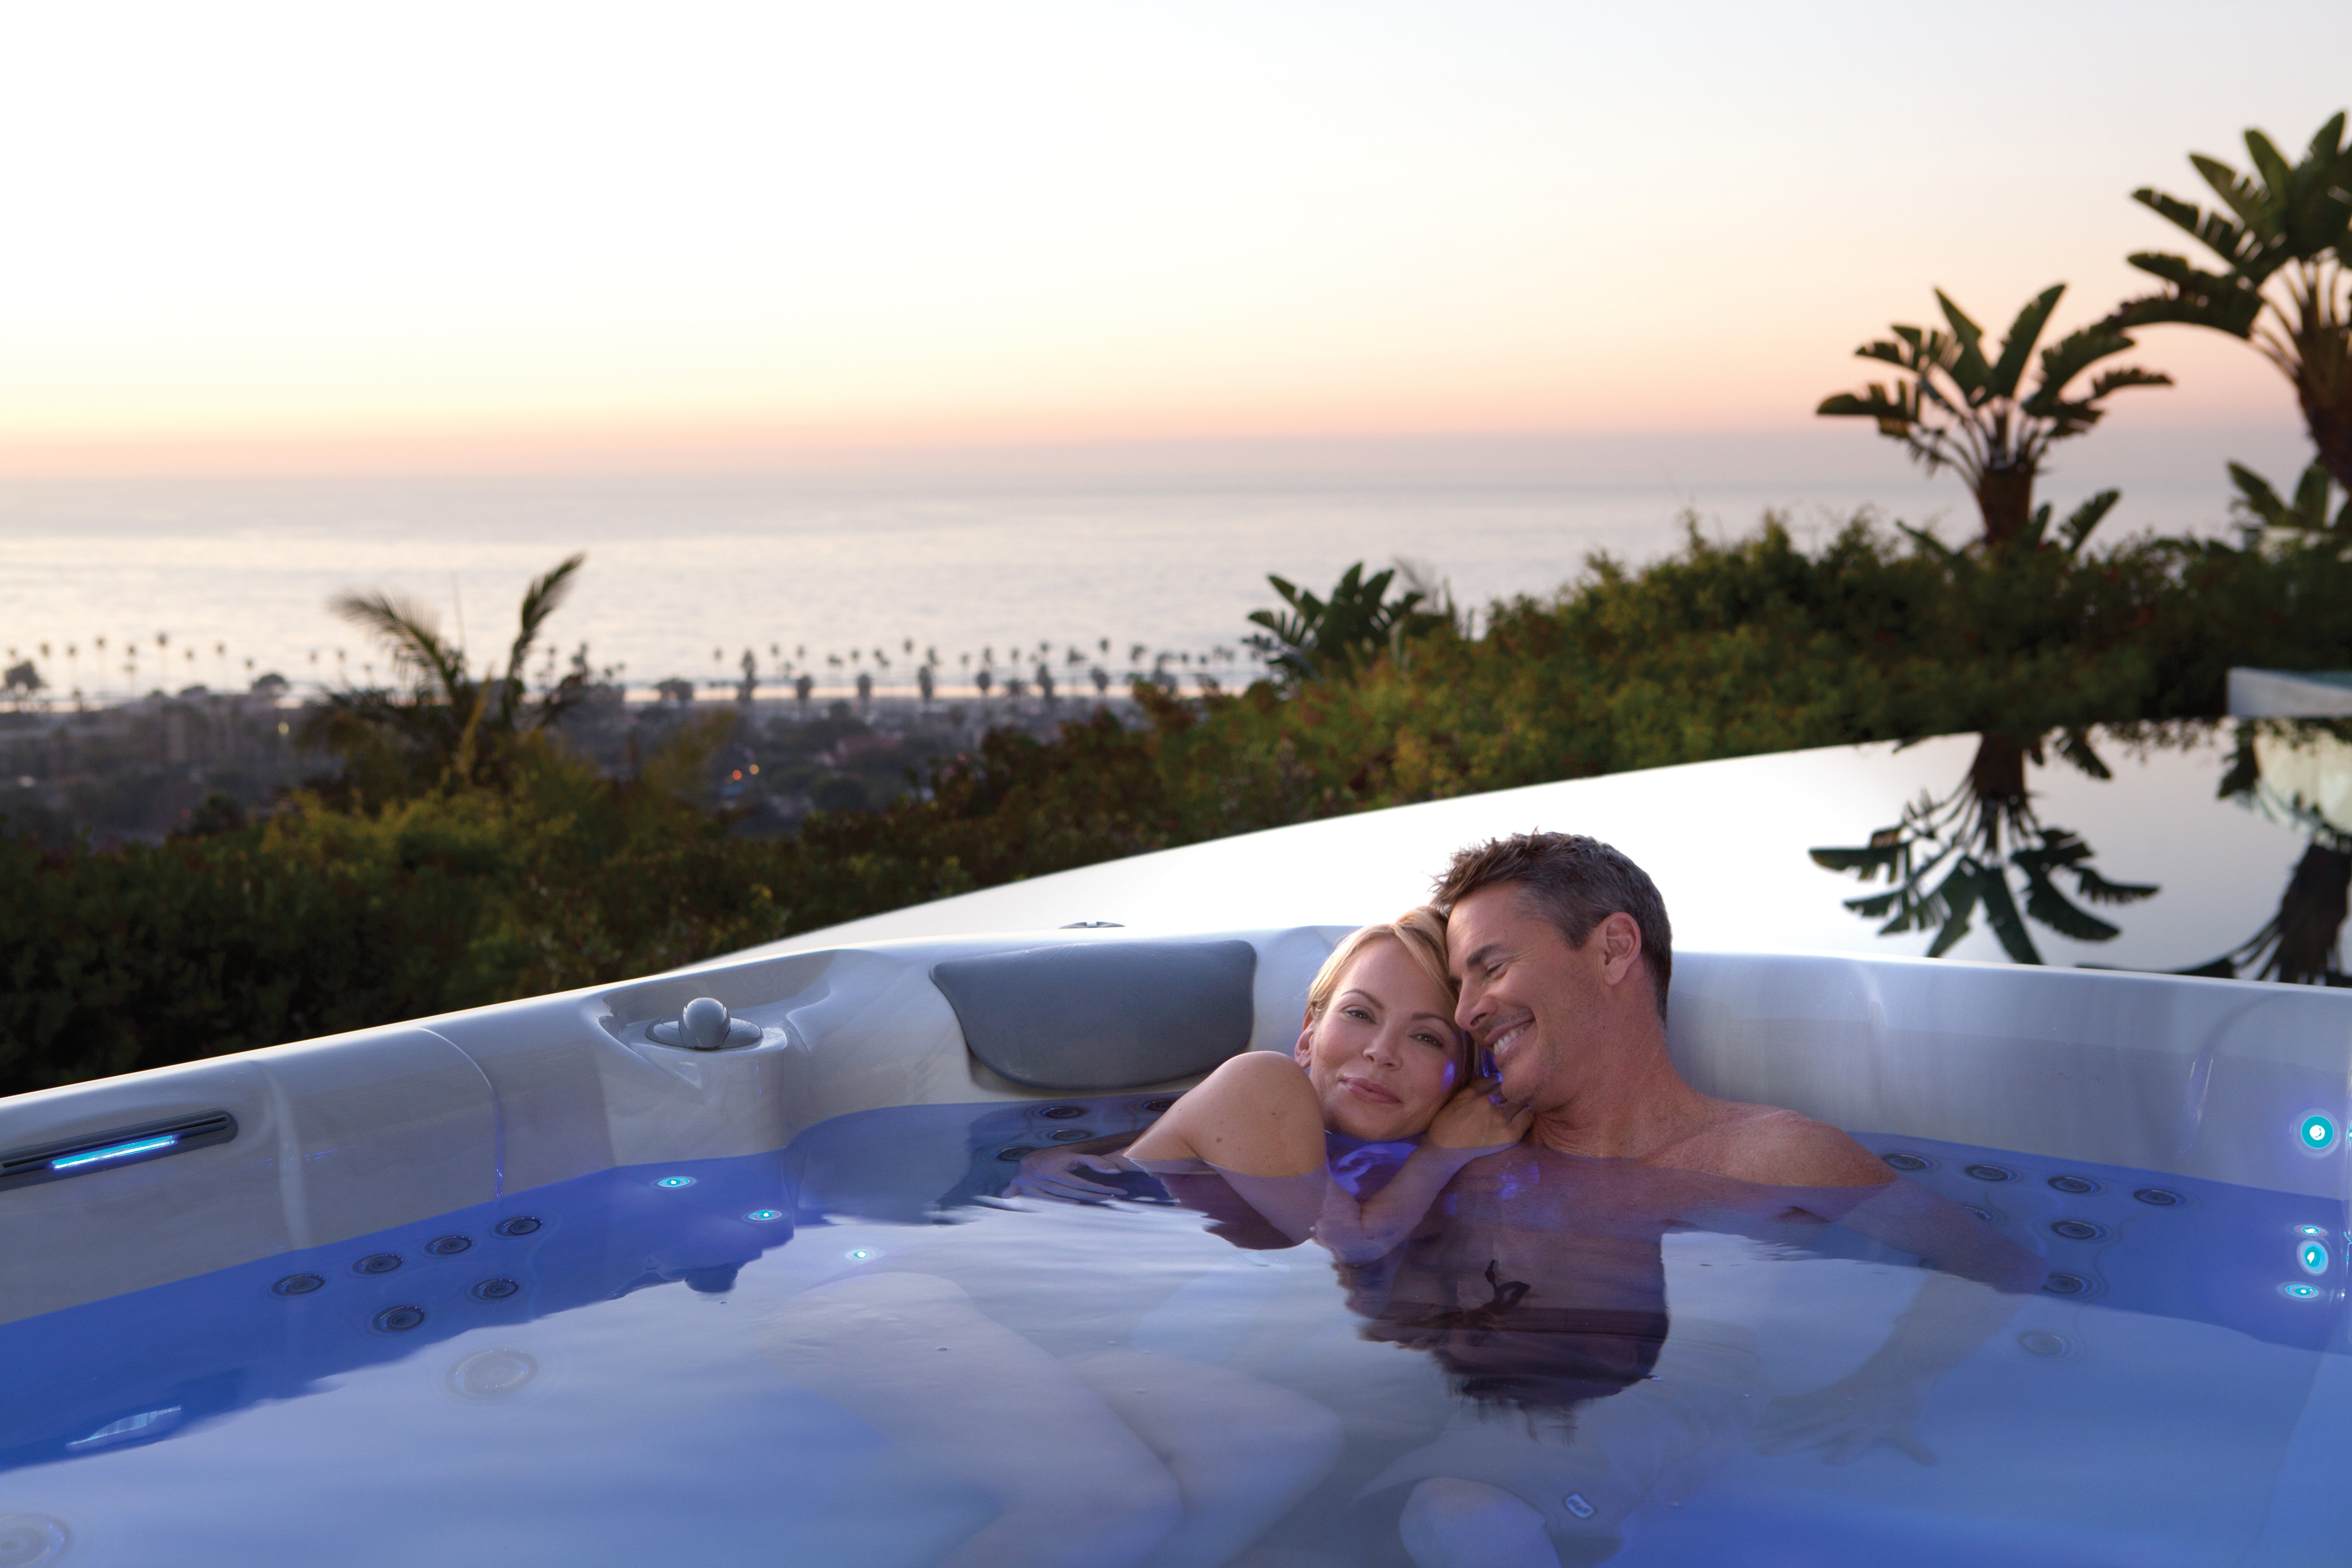 A Valentine's Day hot tub surprise soak is the perfect way to build intimacy.